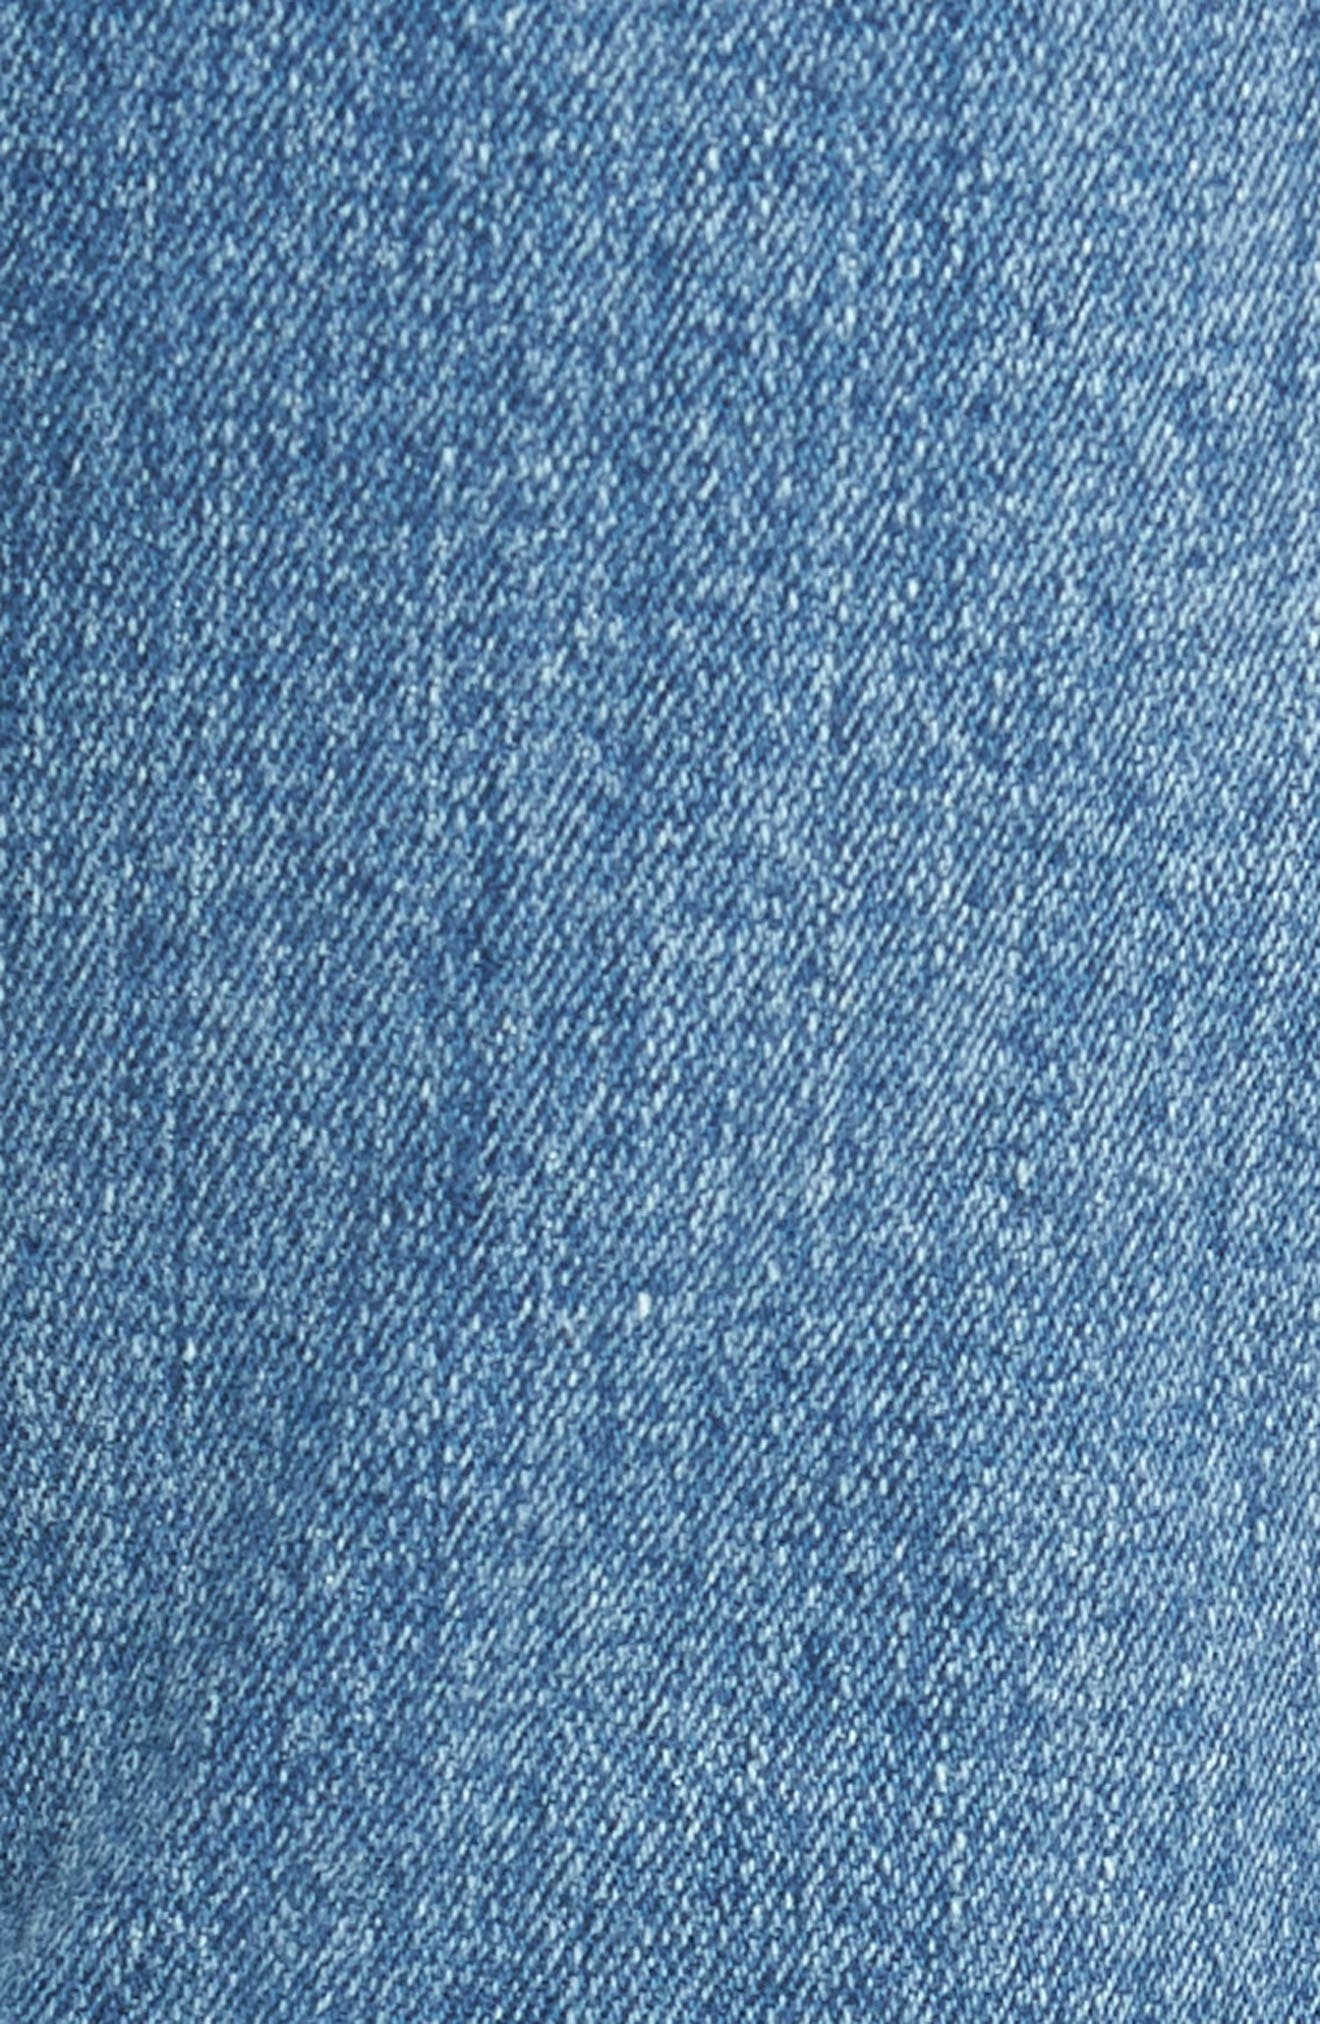 Austyn Relaxed Fit Jeans,                             Alternate thumbnail 5, color,                             PROSE